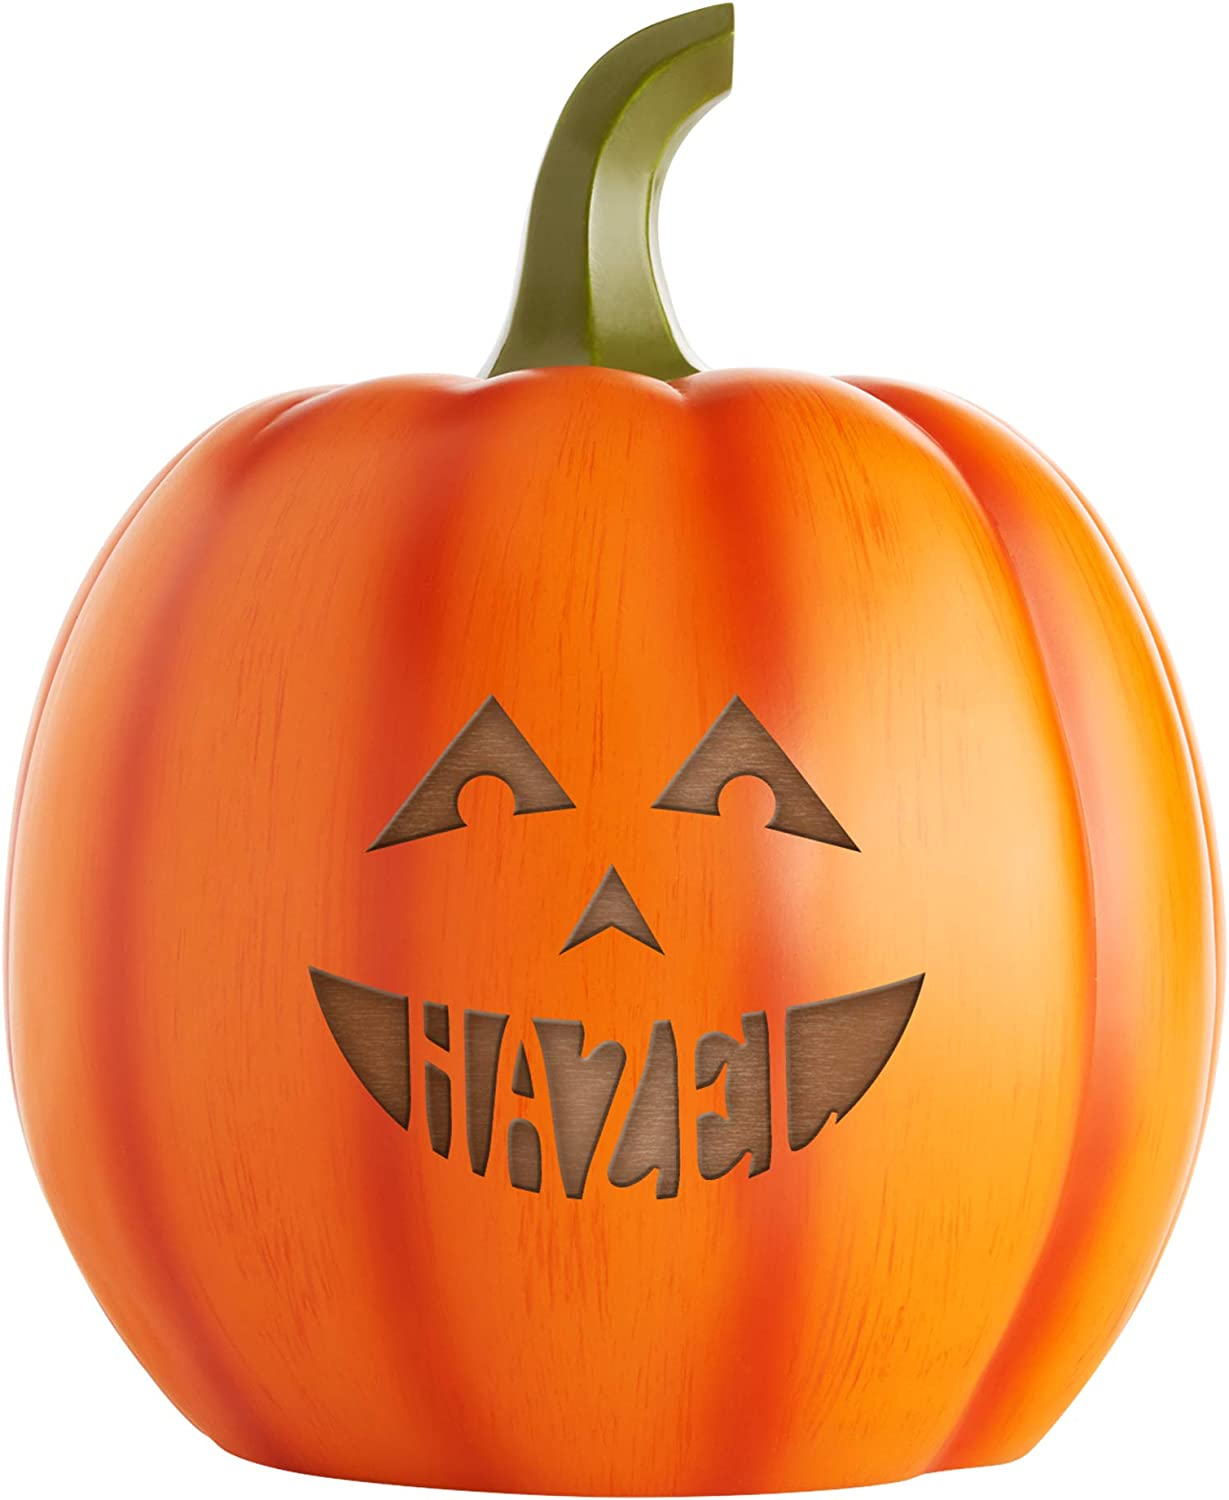 Let's Make Tulsa Mall Memories Personalized Pumpkin Decoration - Super Special SALE held Halloween